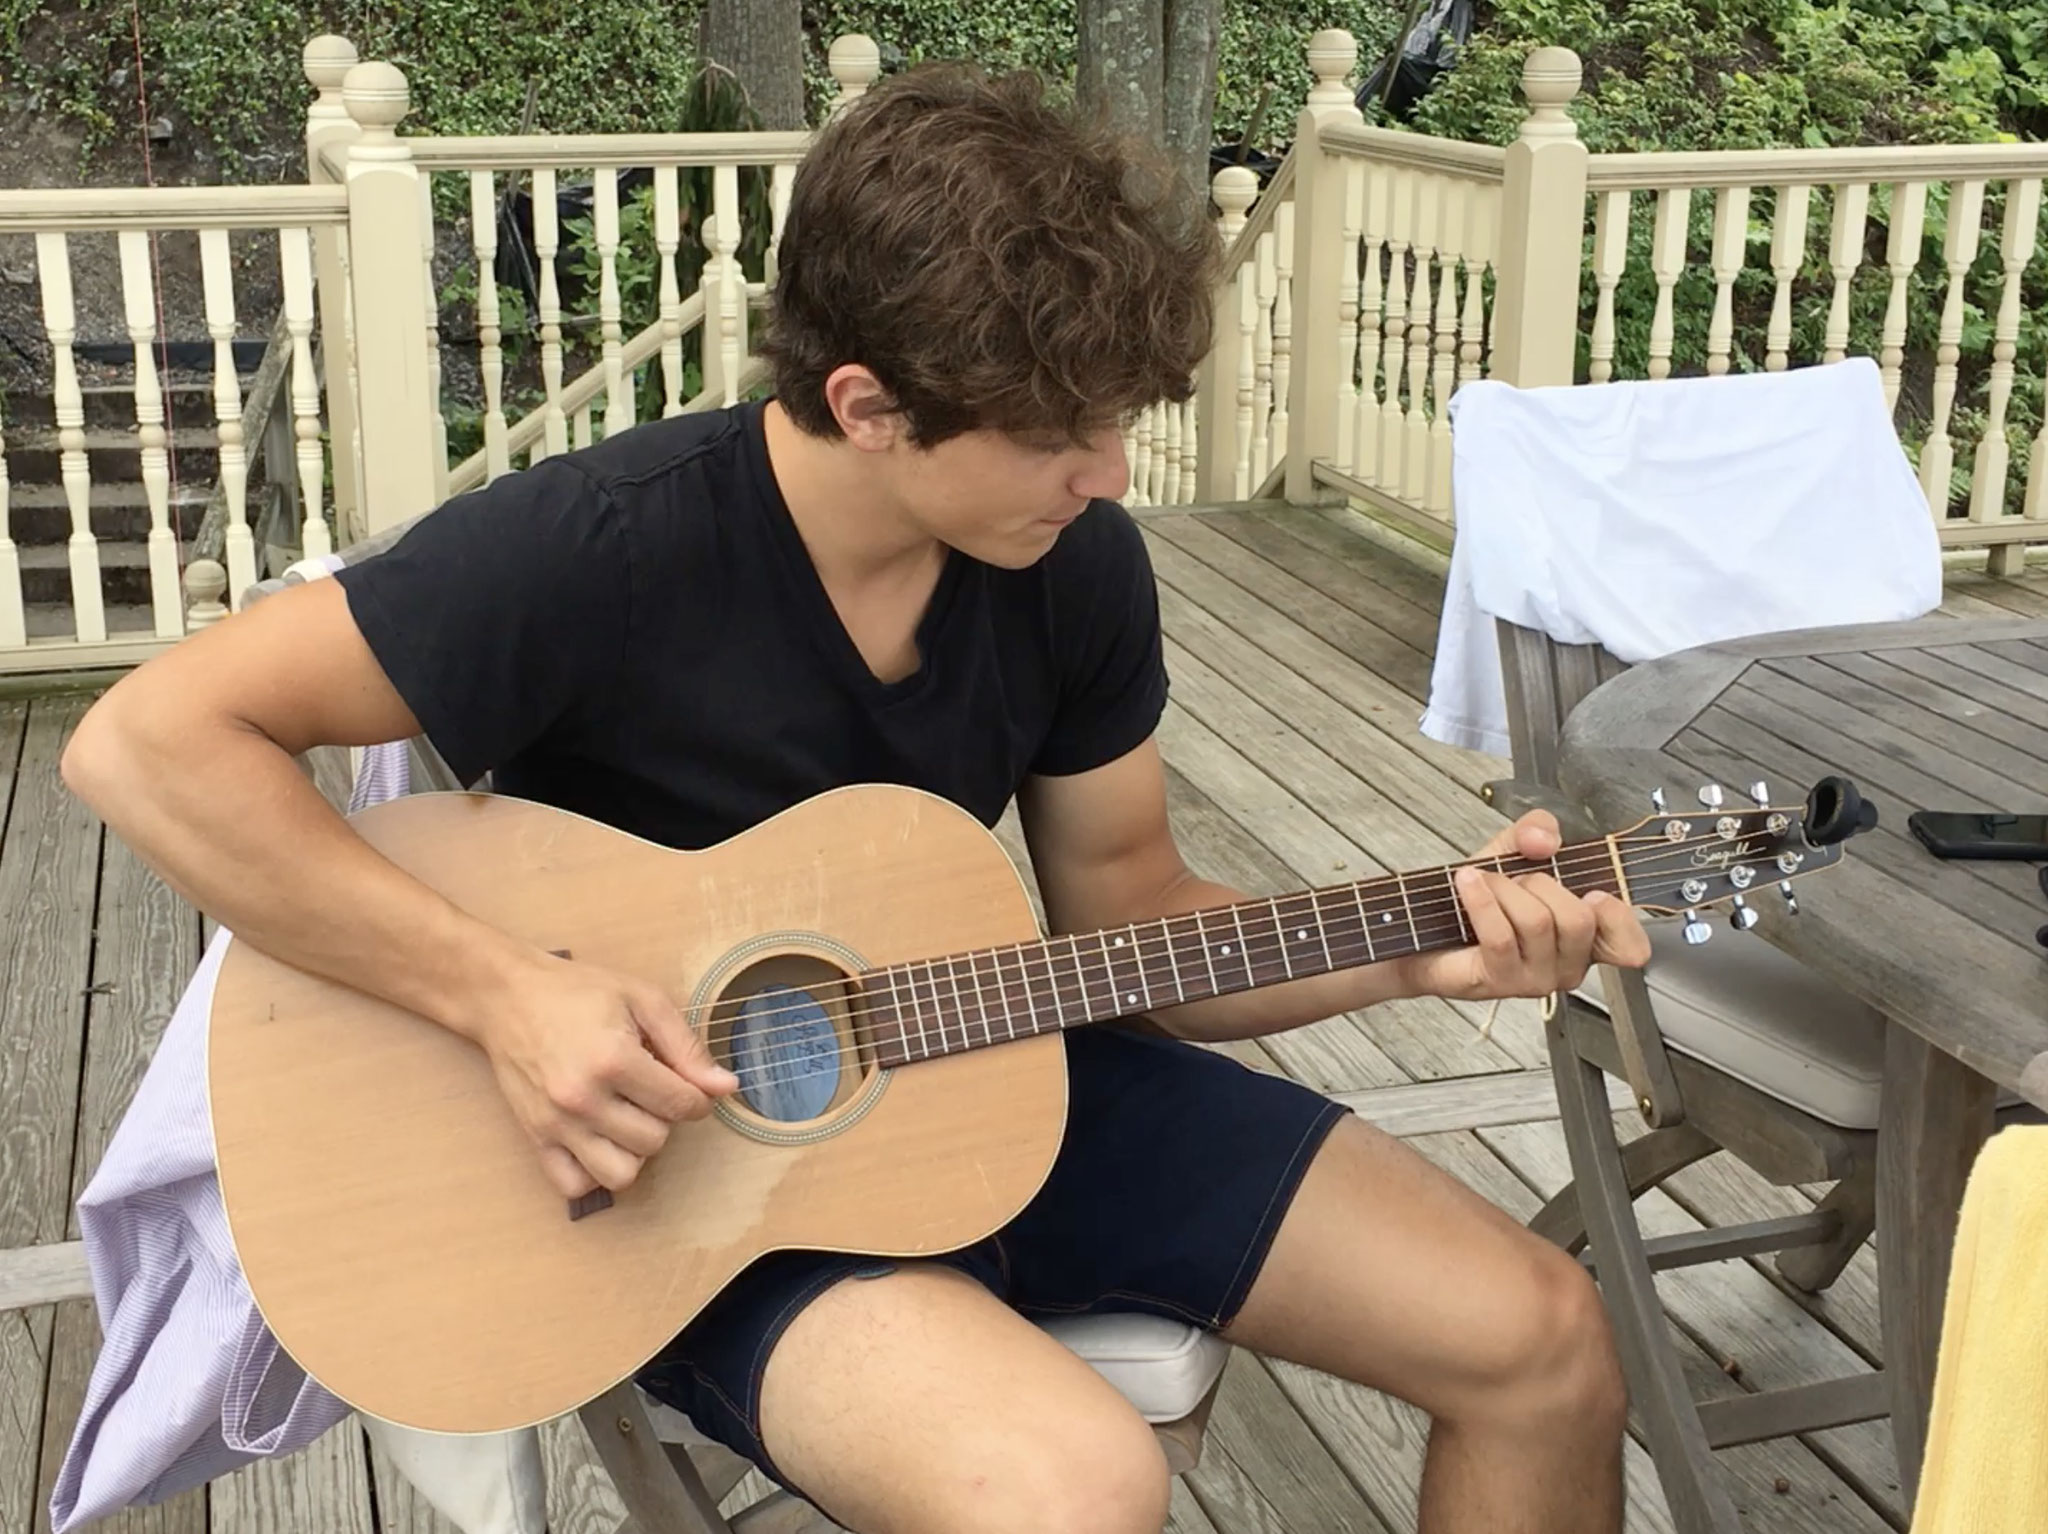 Dino playing the guitar, 8-2020